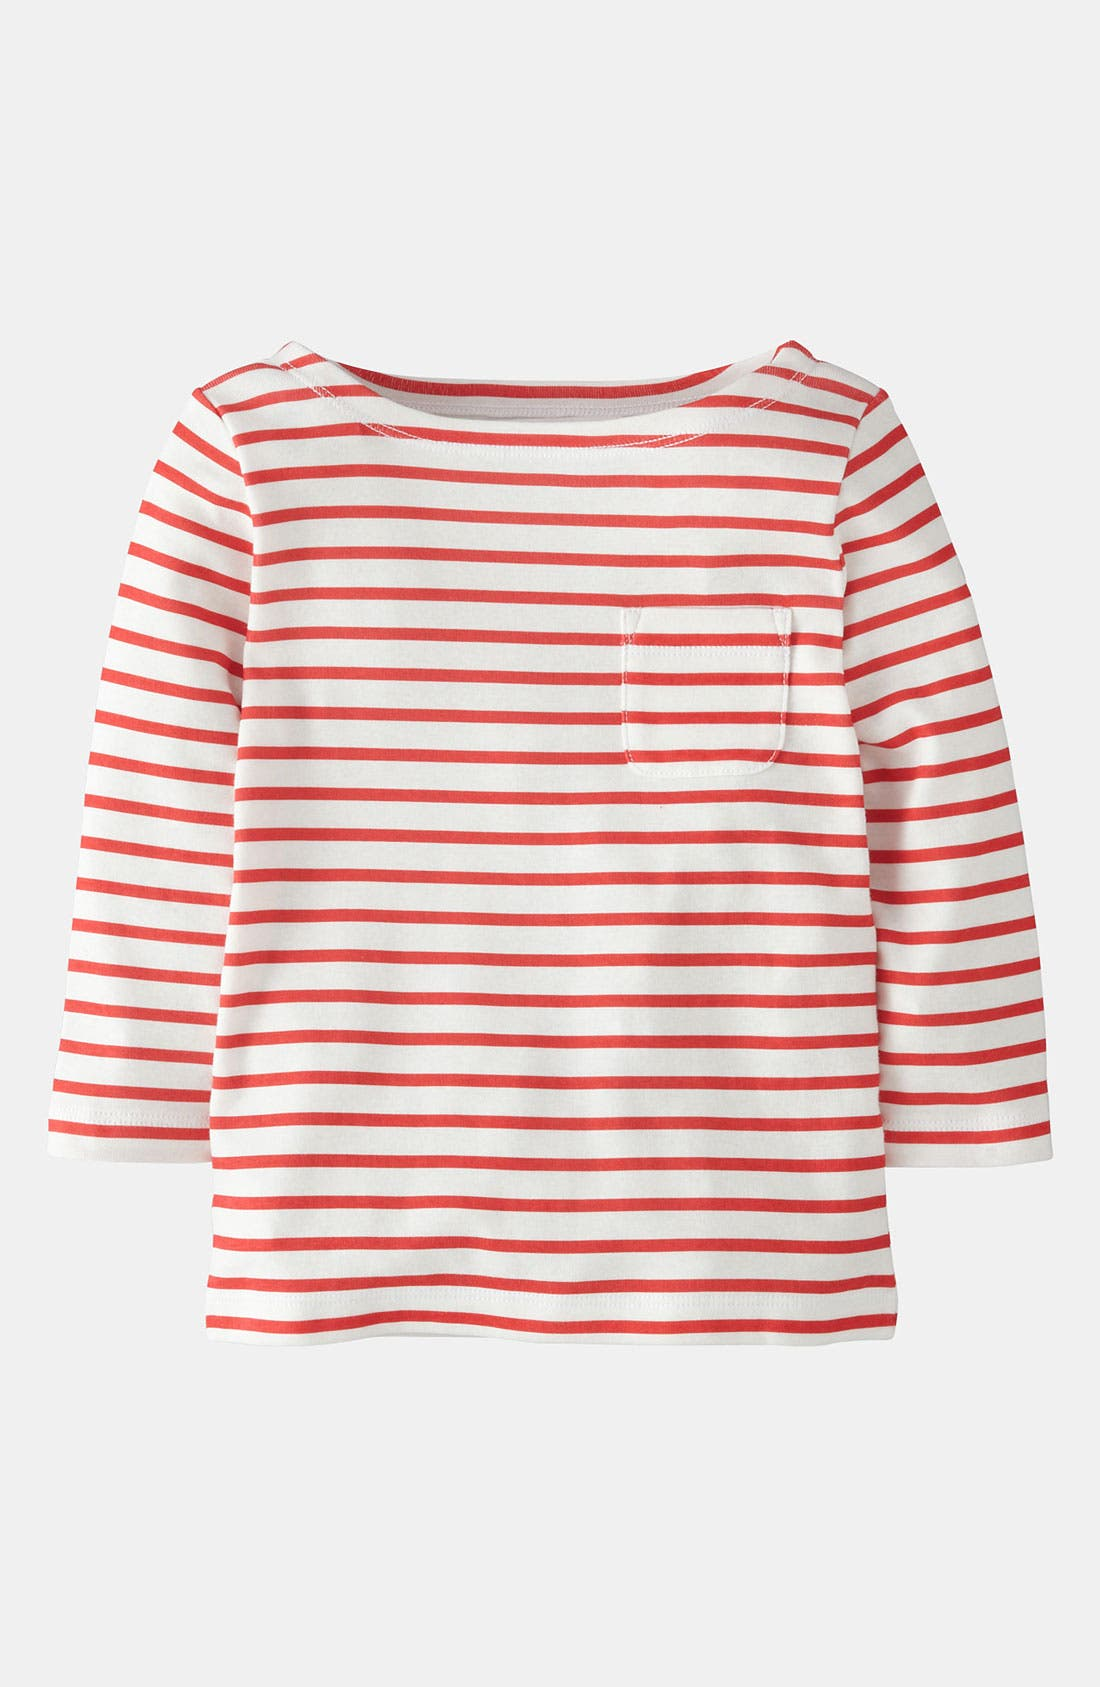 Main Image - Mini Boden 'Stripy' Boatneck Tee (Little Girls & Big Girls)